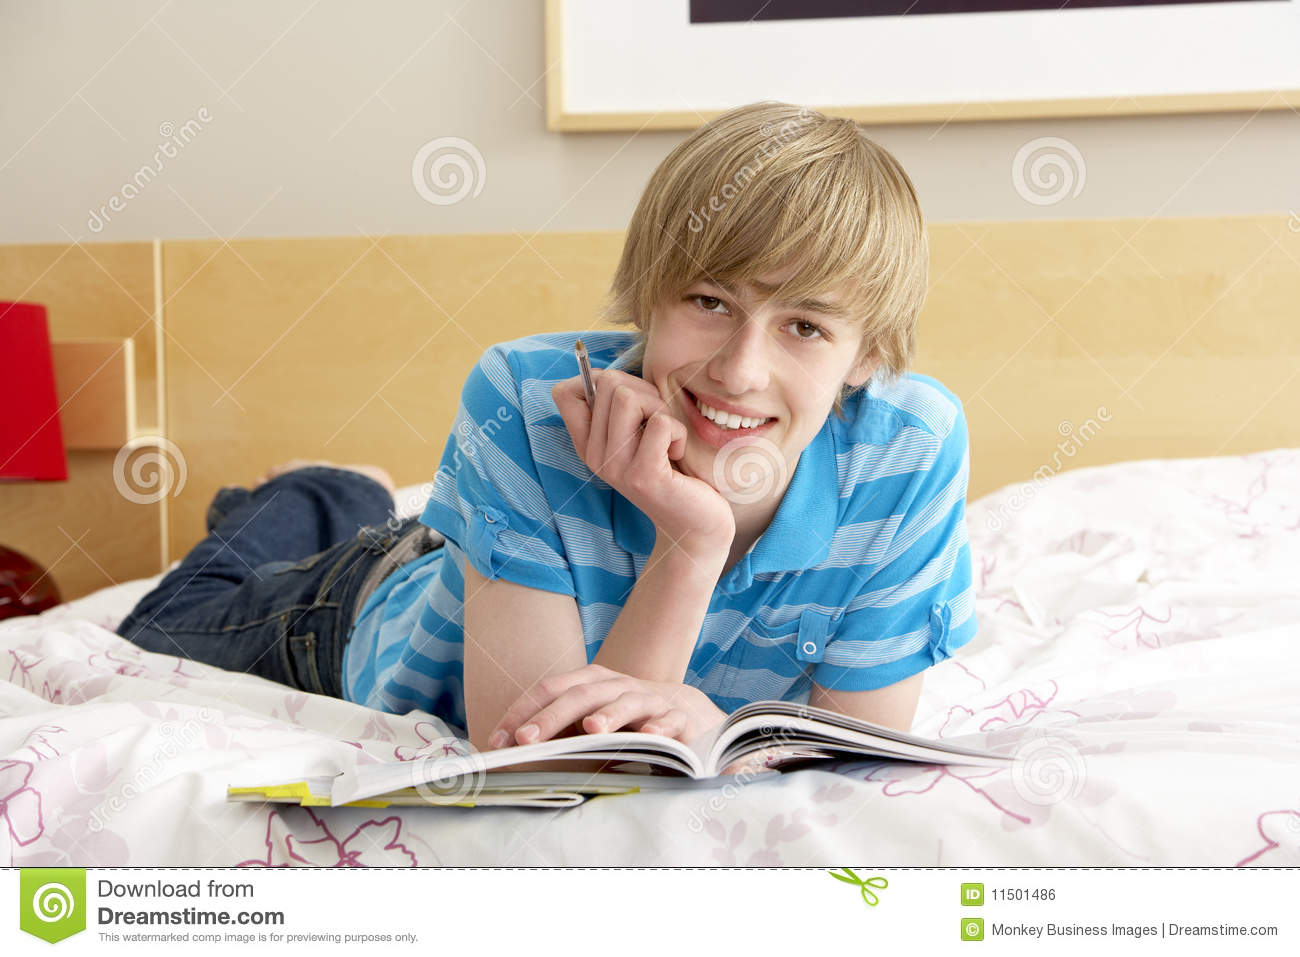 Pay for Essay with Us to Reach Best Grades